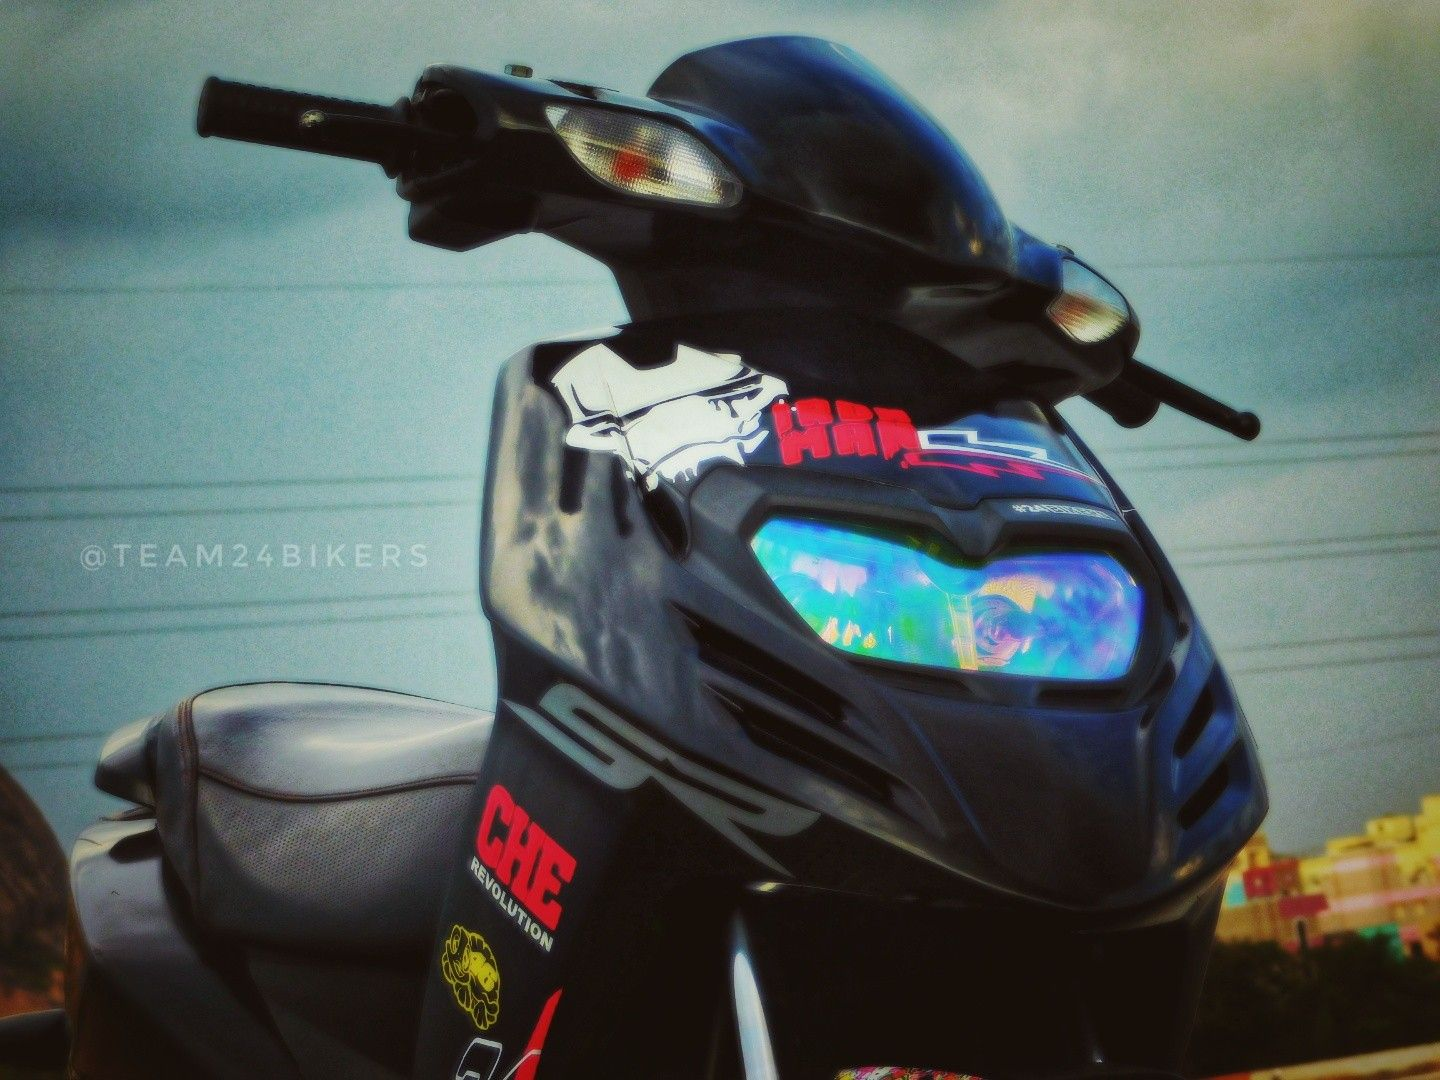 Aprilia sr 150 modified team24bikers mujju24